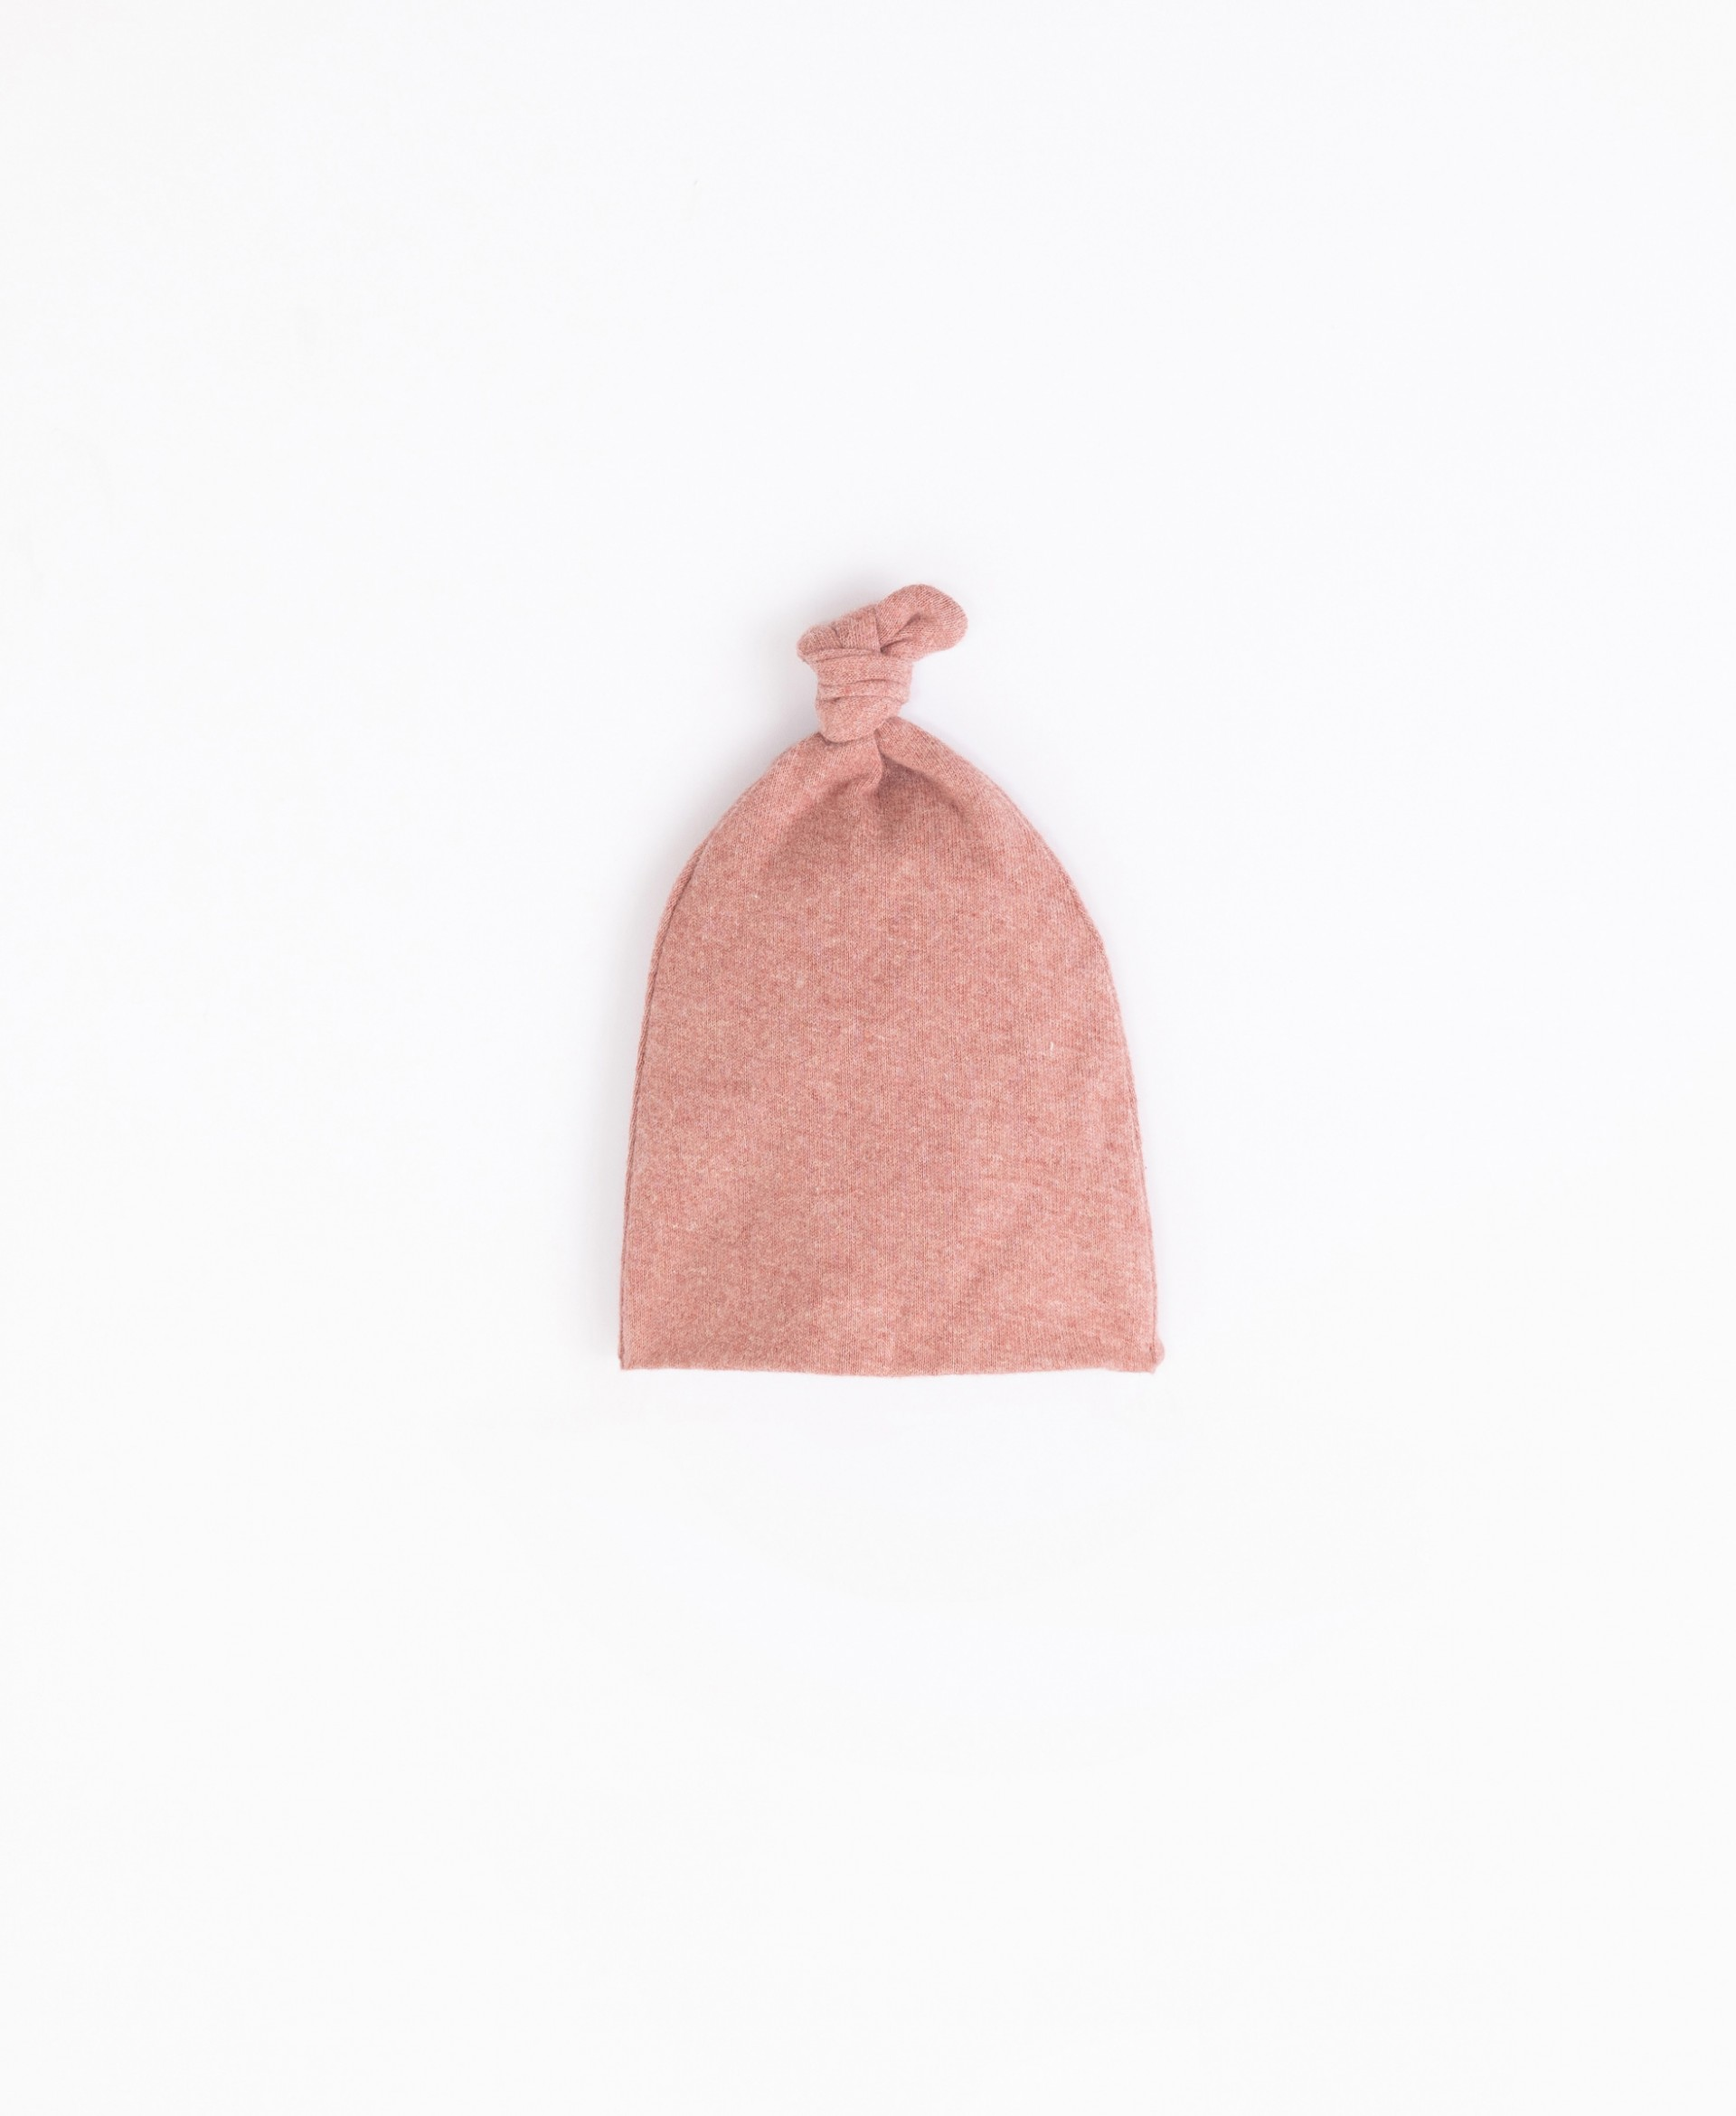 Beanie with a knot on top   Illustration